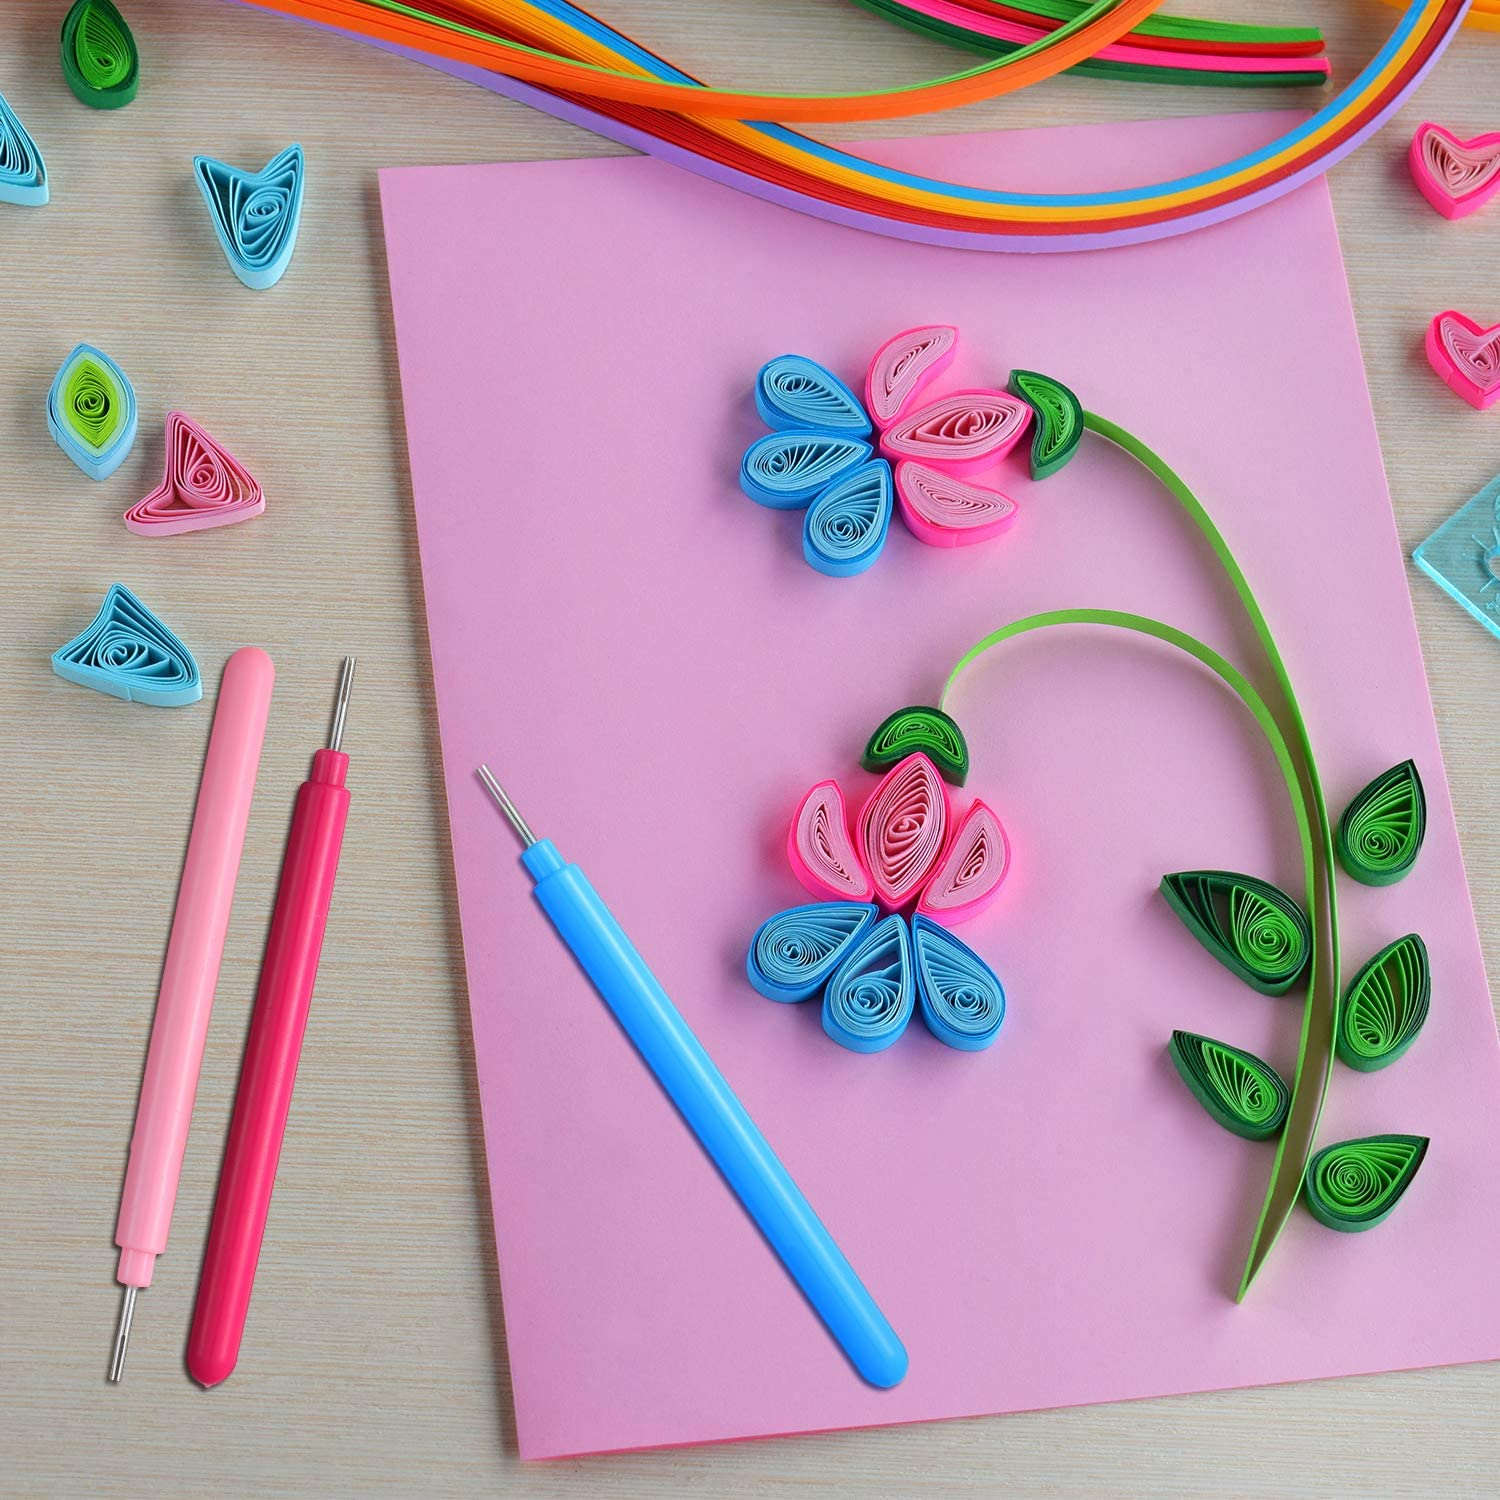 4 Colors 12 Pieces Paper Quilling Tools Rolling Curling Quilling Needle Pen DIY Cardmaking Paper Quilling Pen for Art Craft Handmade Tools